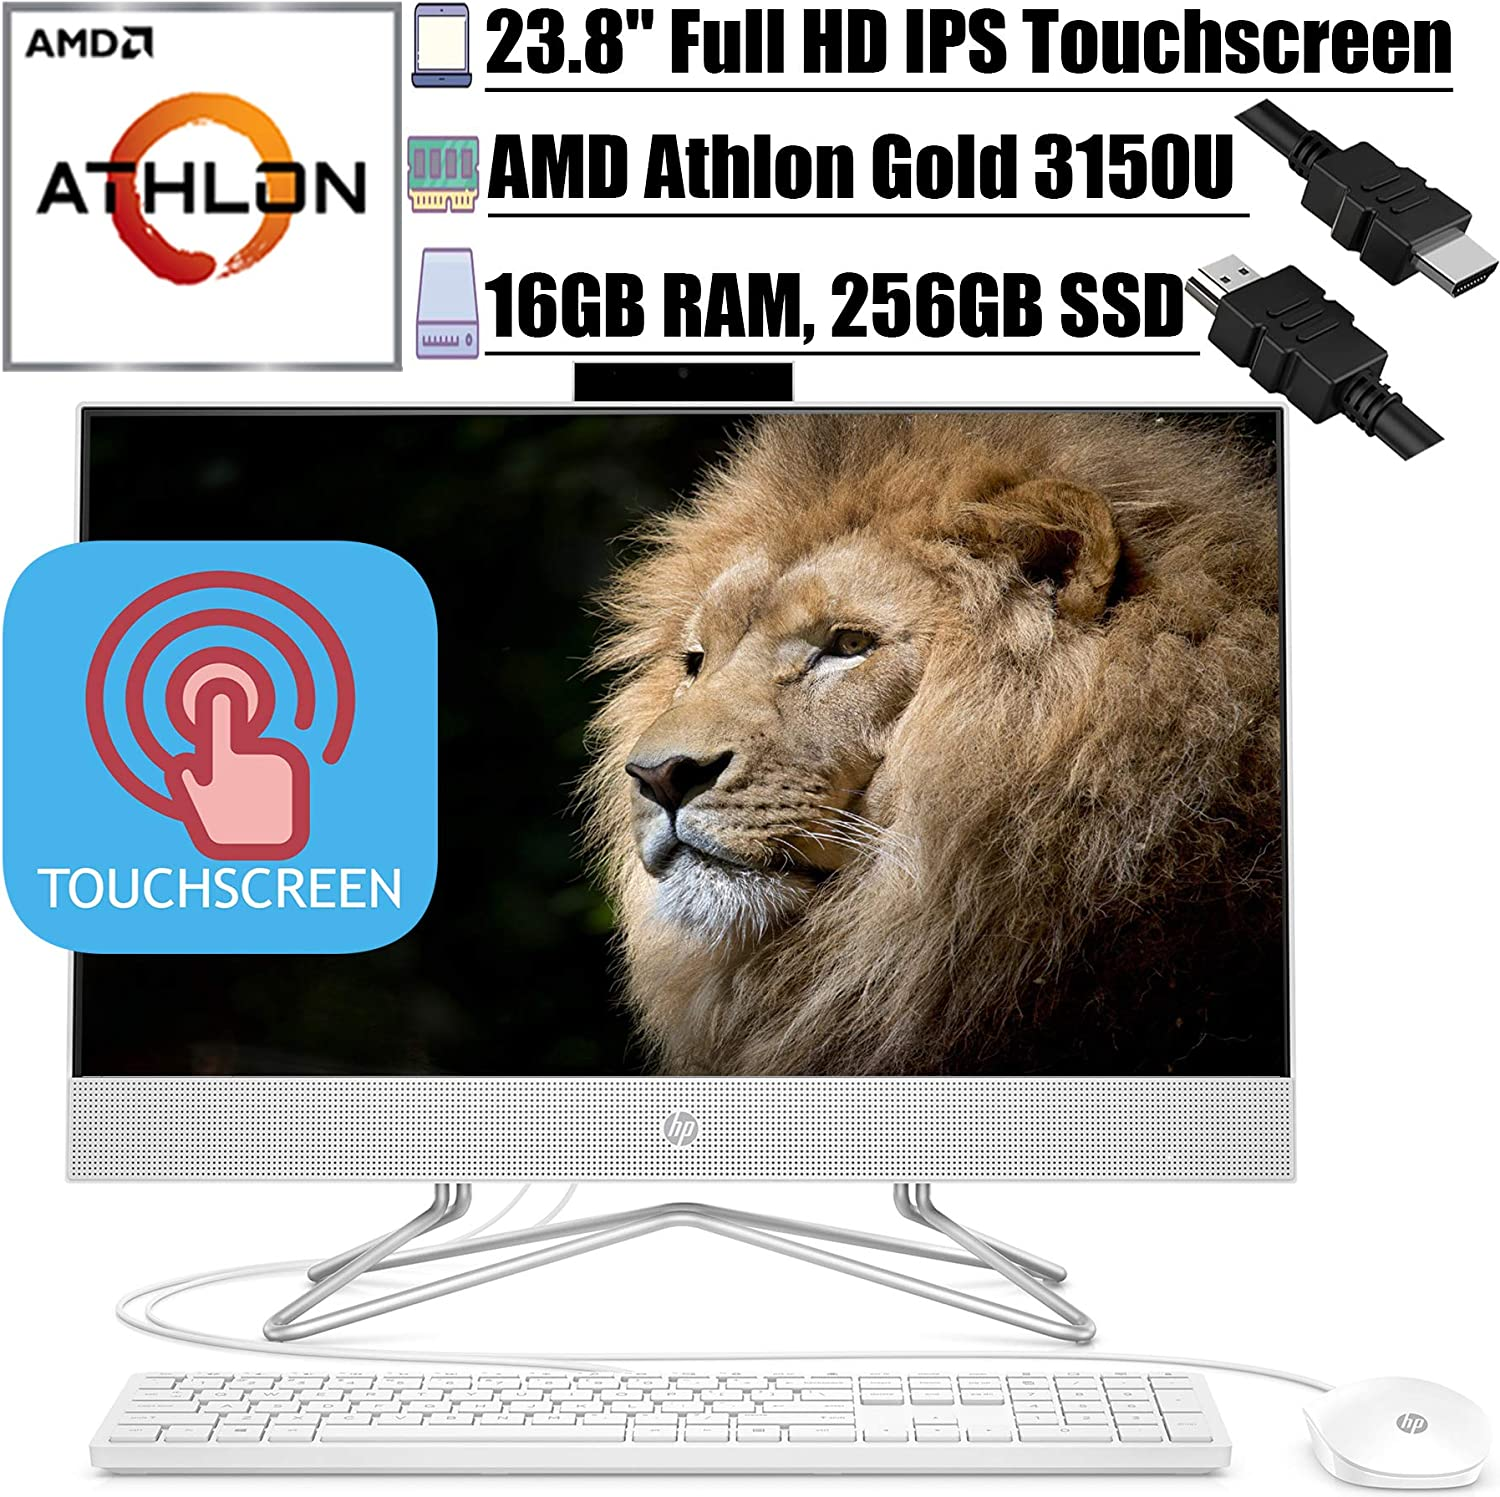 """2020 Flagship HP 24 All in One Desktop Computer 23.8""""FHD IPS Touchscreen Display AMD Athlon Gold 3150U 16GB DDR4 256GB SSD WiFi DVD AMD Radeon Graphics Keyboard and Mouse Win 10 + iCarp HDMI Cable"""